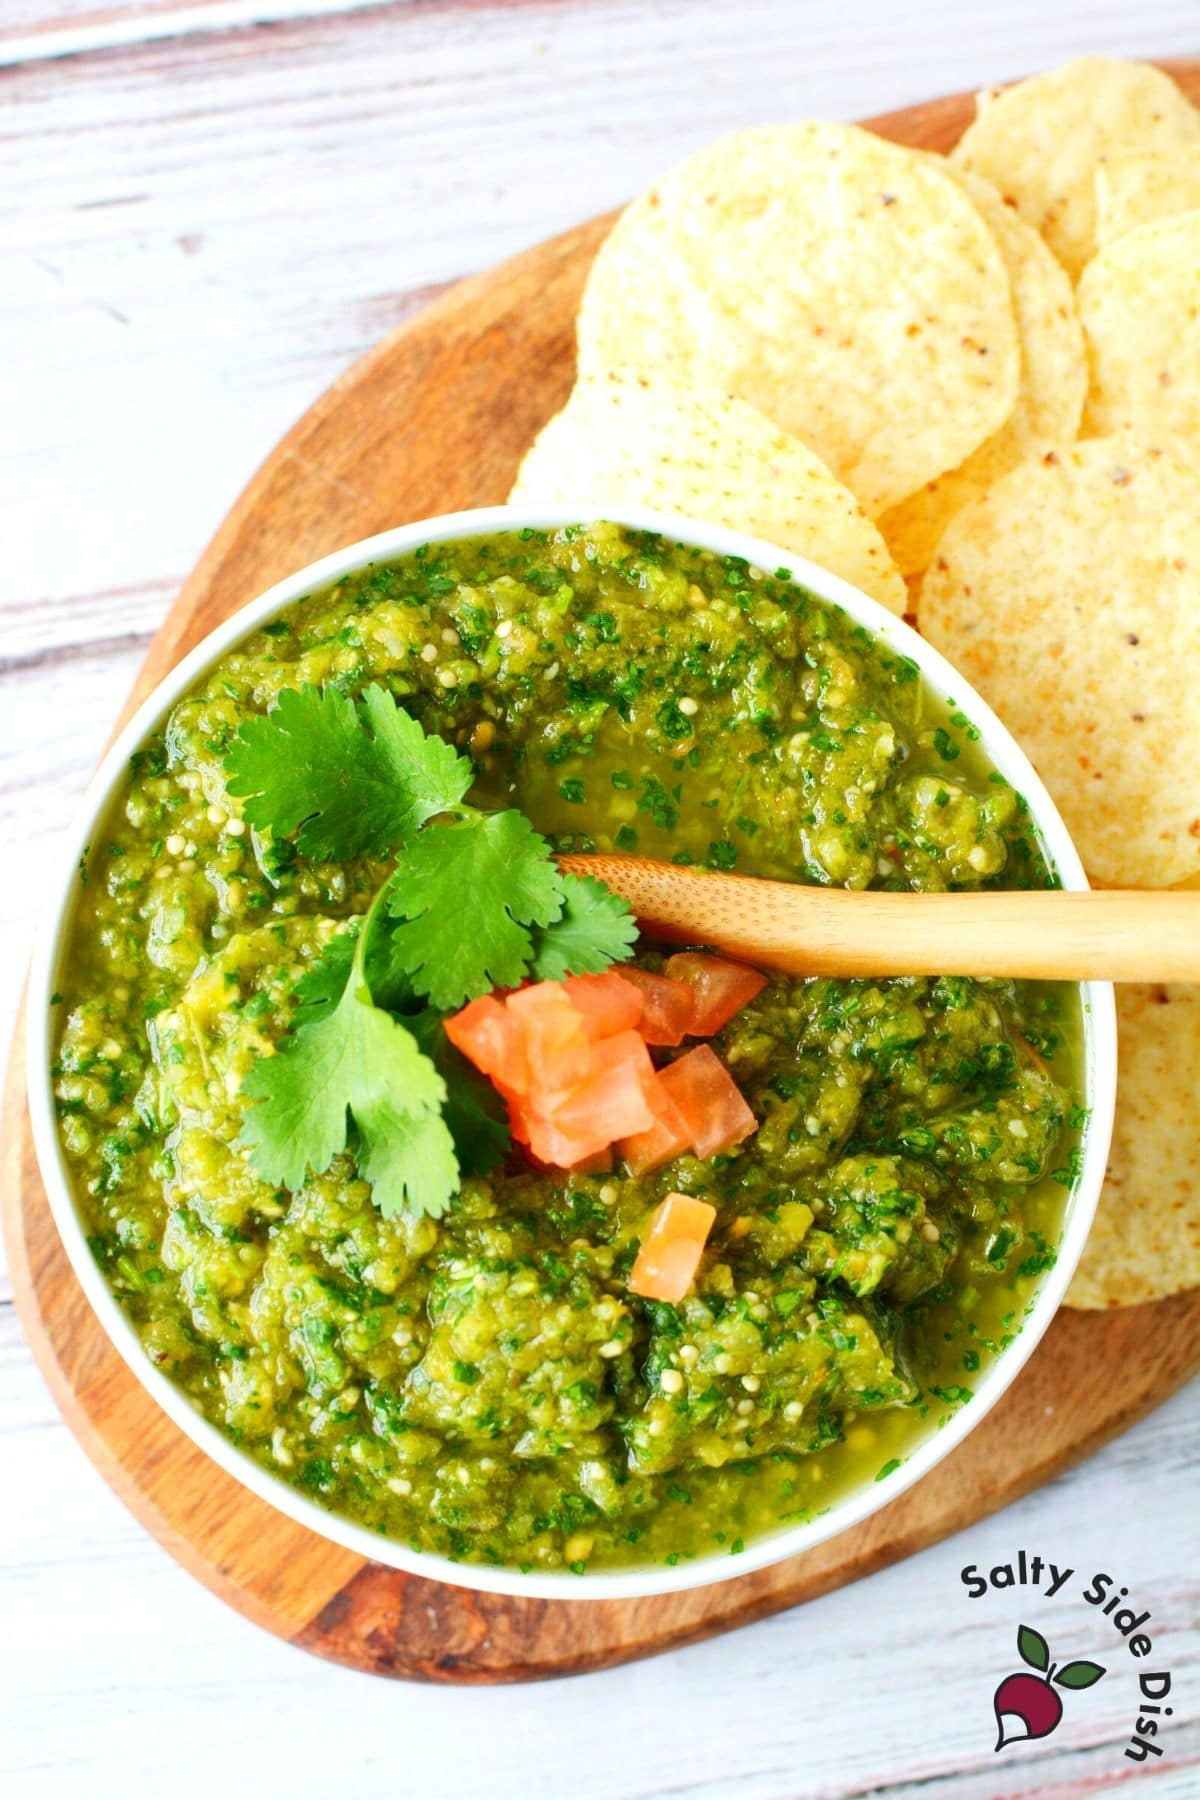 salsa verde in a bowl with chips